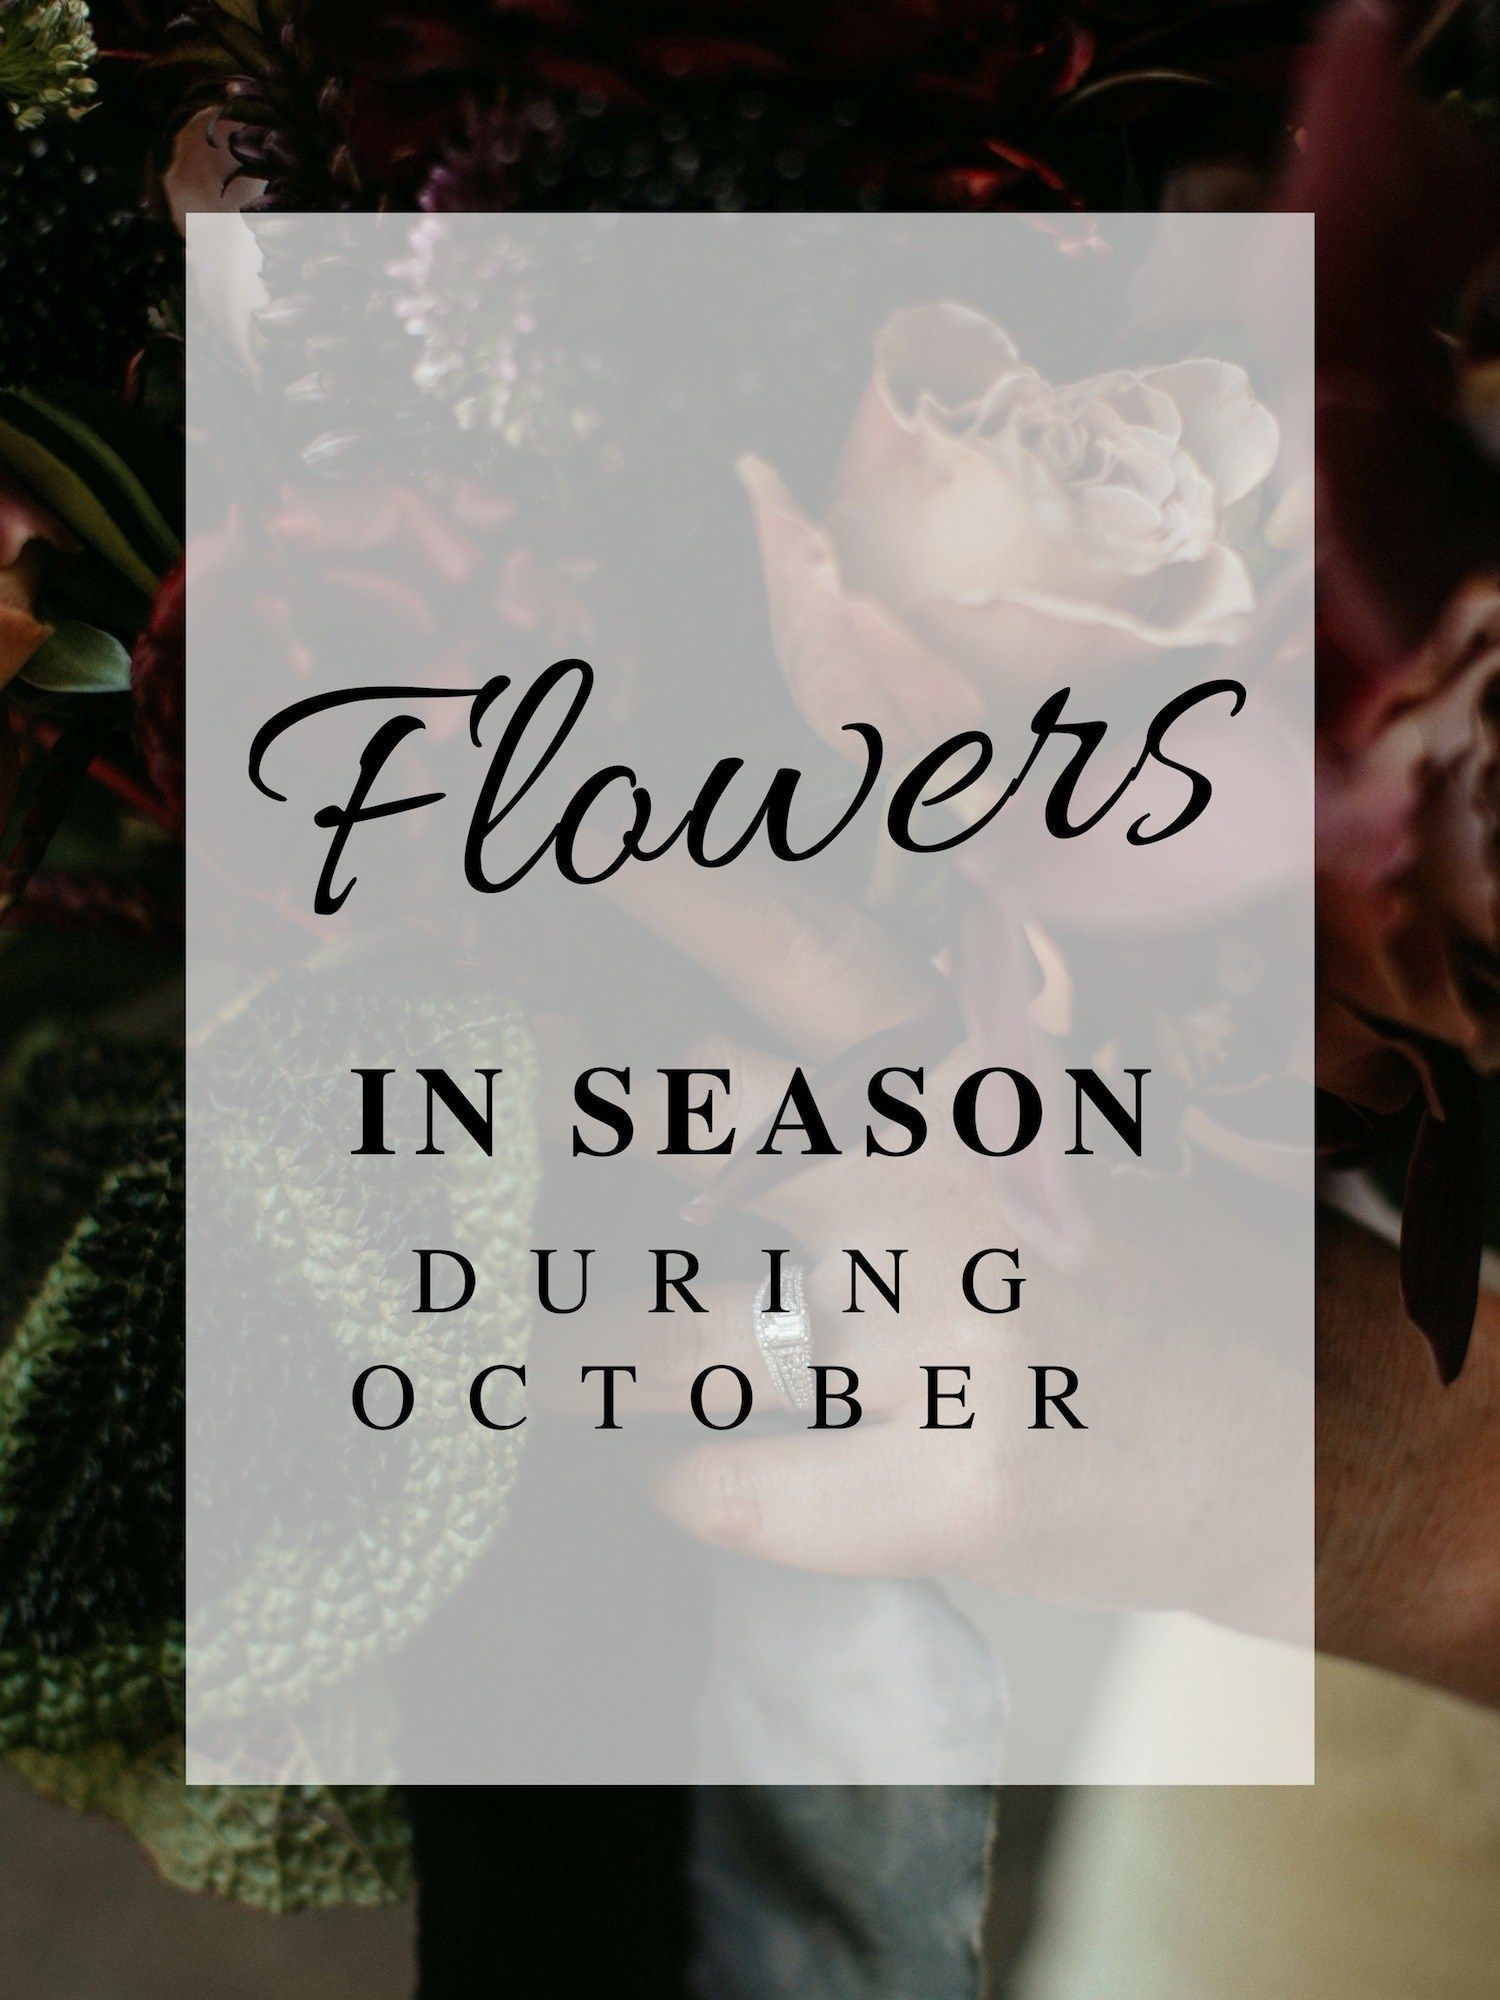 Having a wedding in October and want to have inseason flowers for